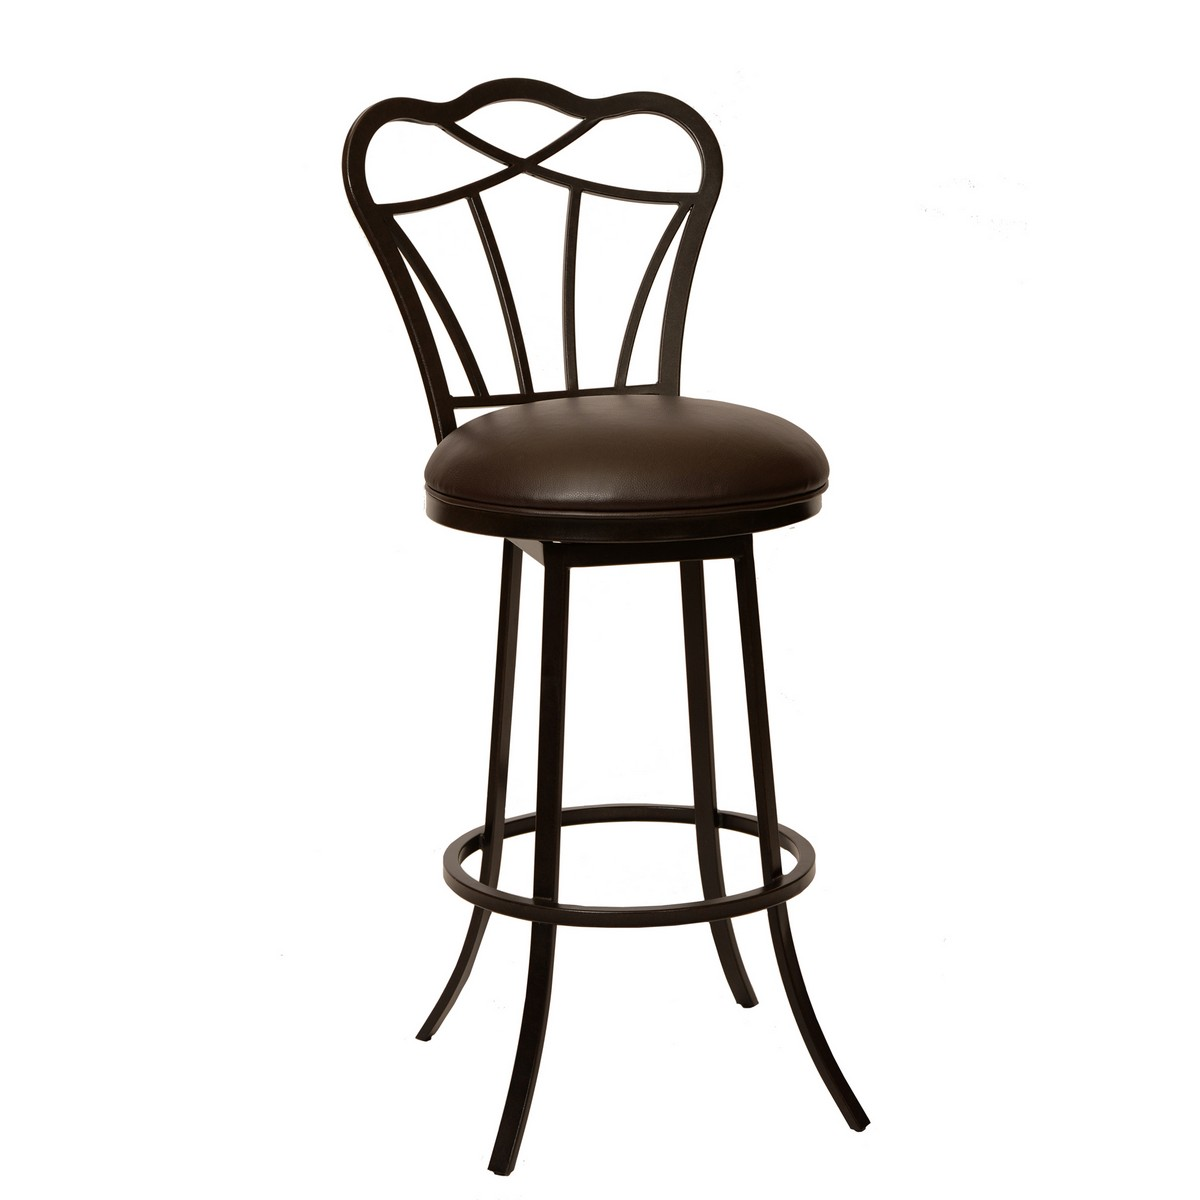 Armen Living Galvin 26-inch Transitional Barstool In Coffee and Auburn Bay Metal